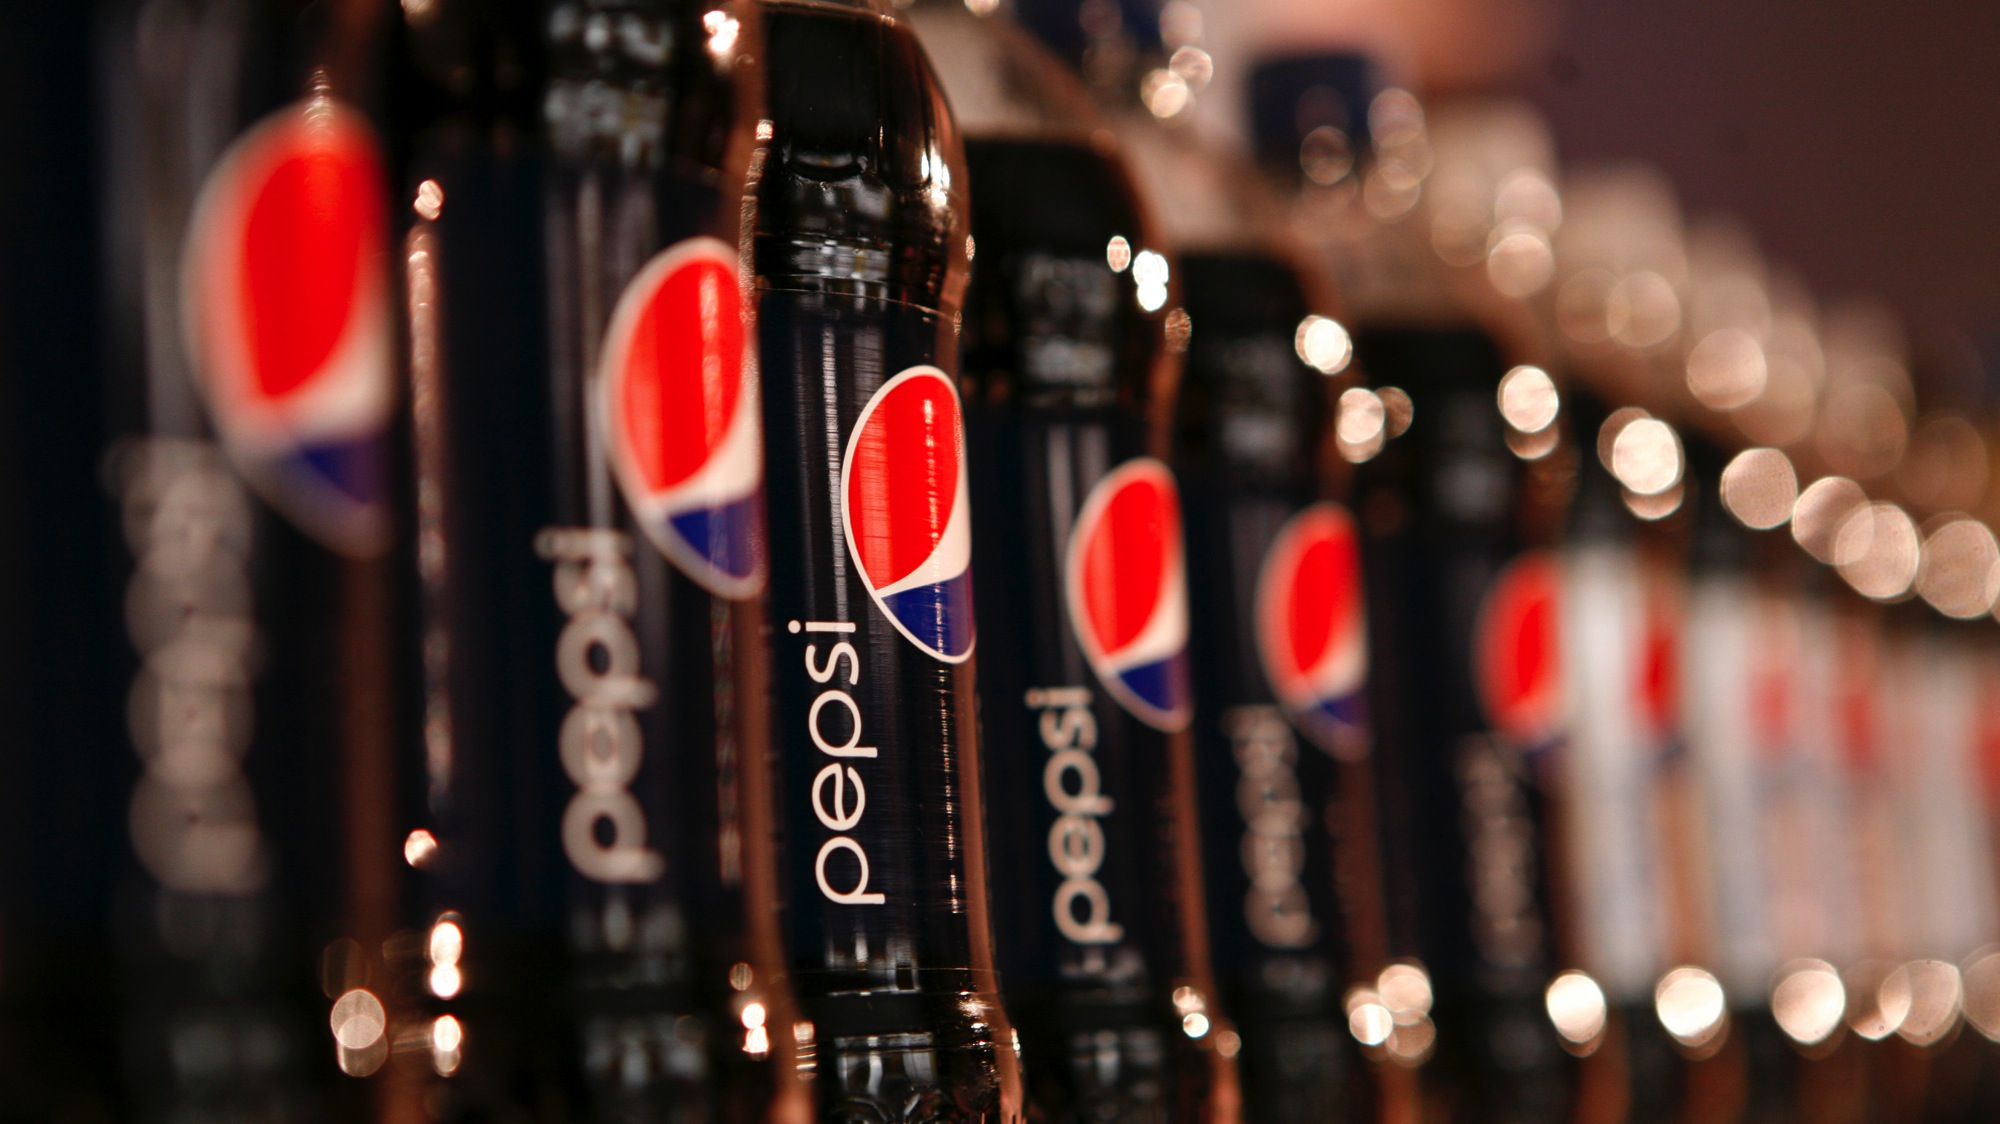 Bottles of Pepsi cola are seen in a display at PepsiCo's 2010 Investor Meeting event in New York, March 22, 2010. REUTERS/Mike Segar (UNITED STATES - Tags: BUSINESS)